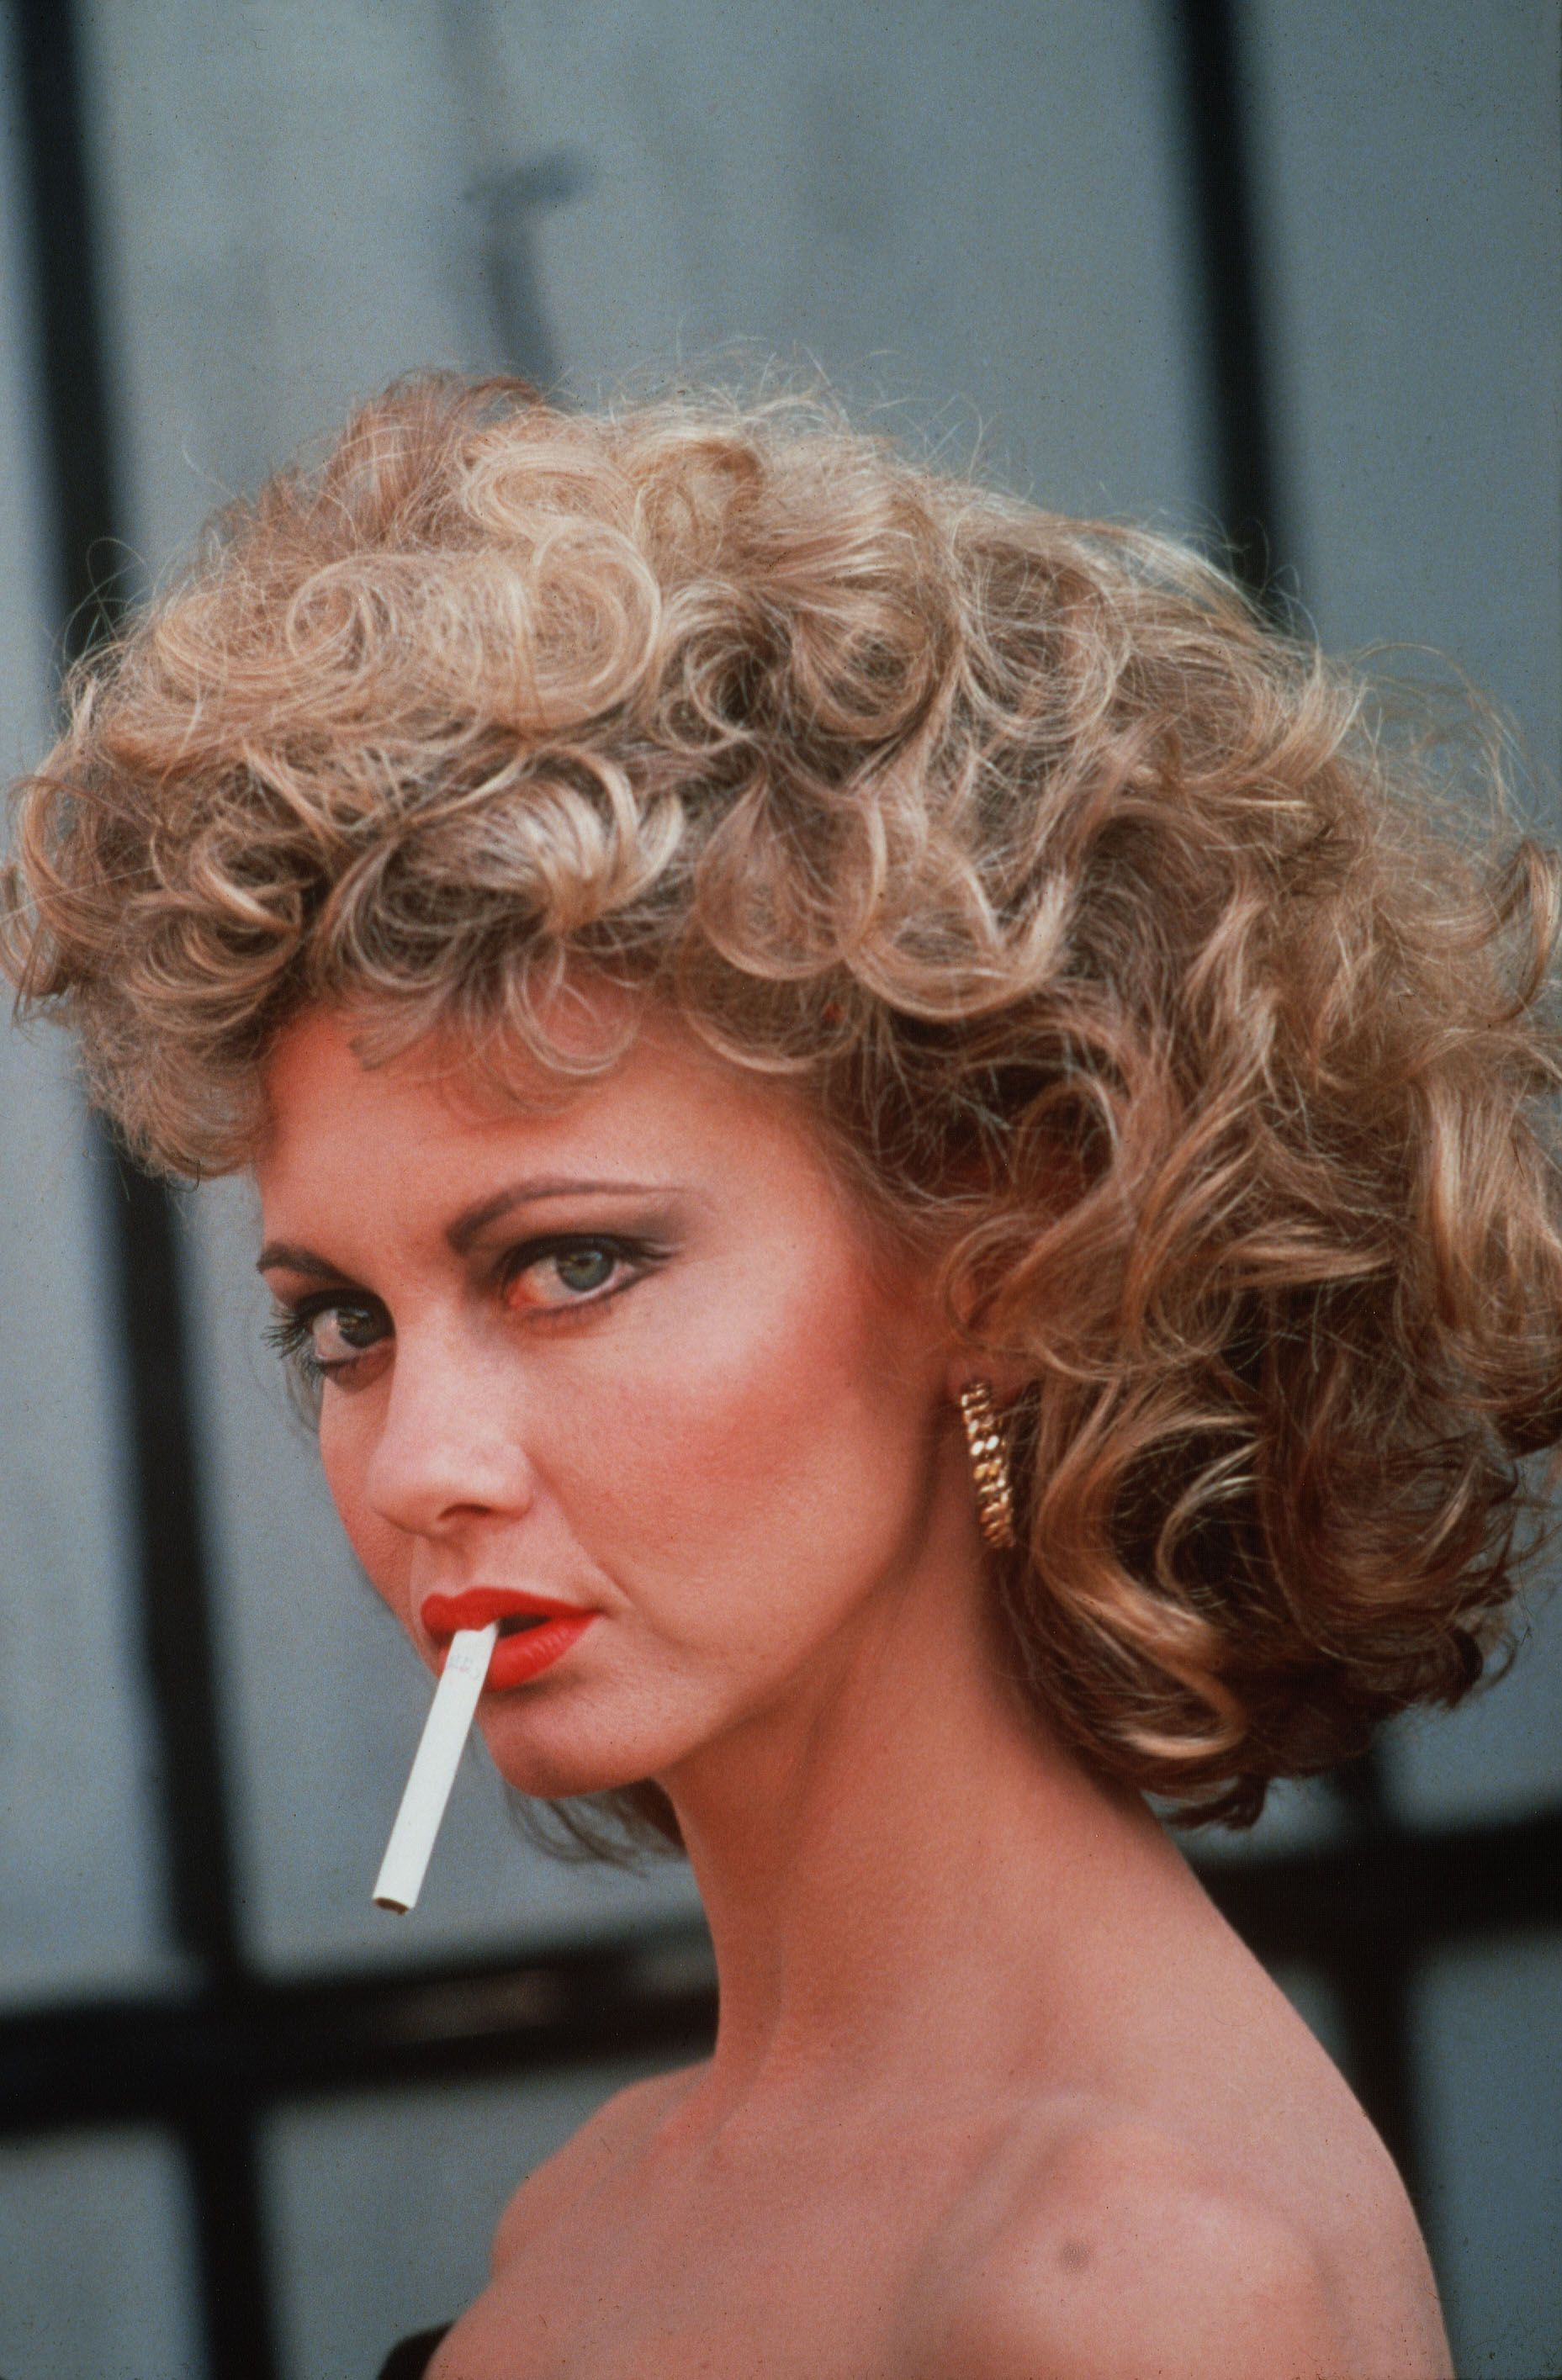 25 Best Movie Hairstyles Of All Time Memorable Hollywood Hair Moments